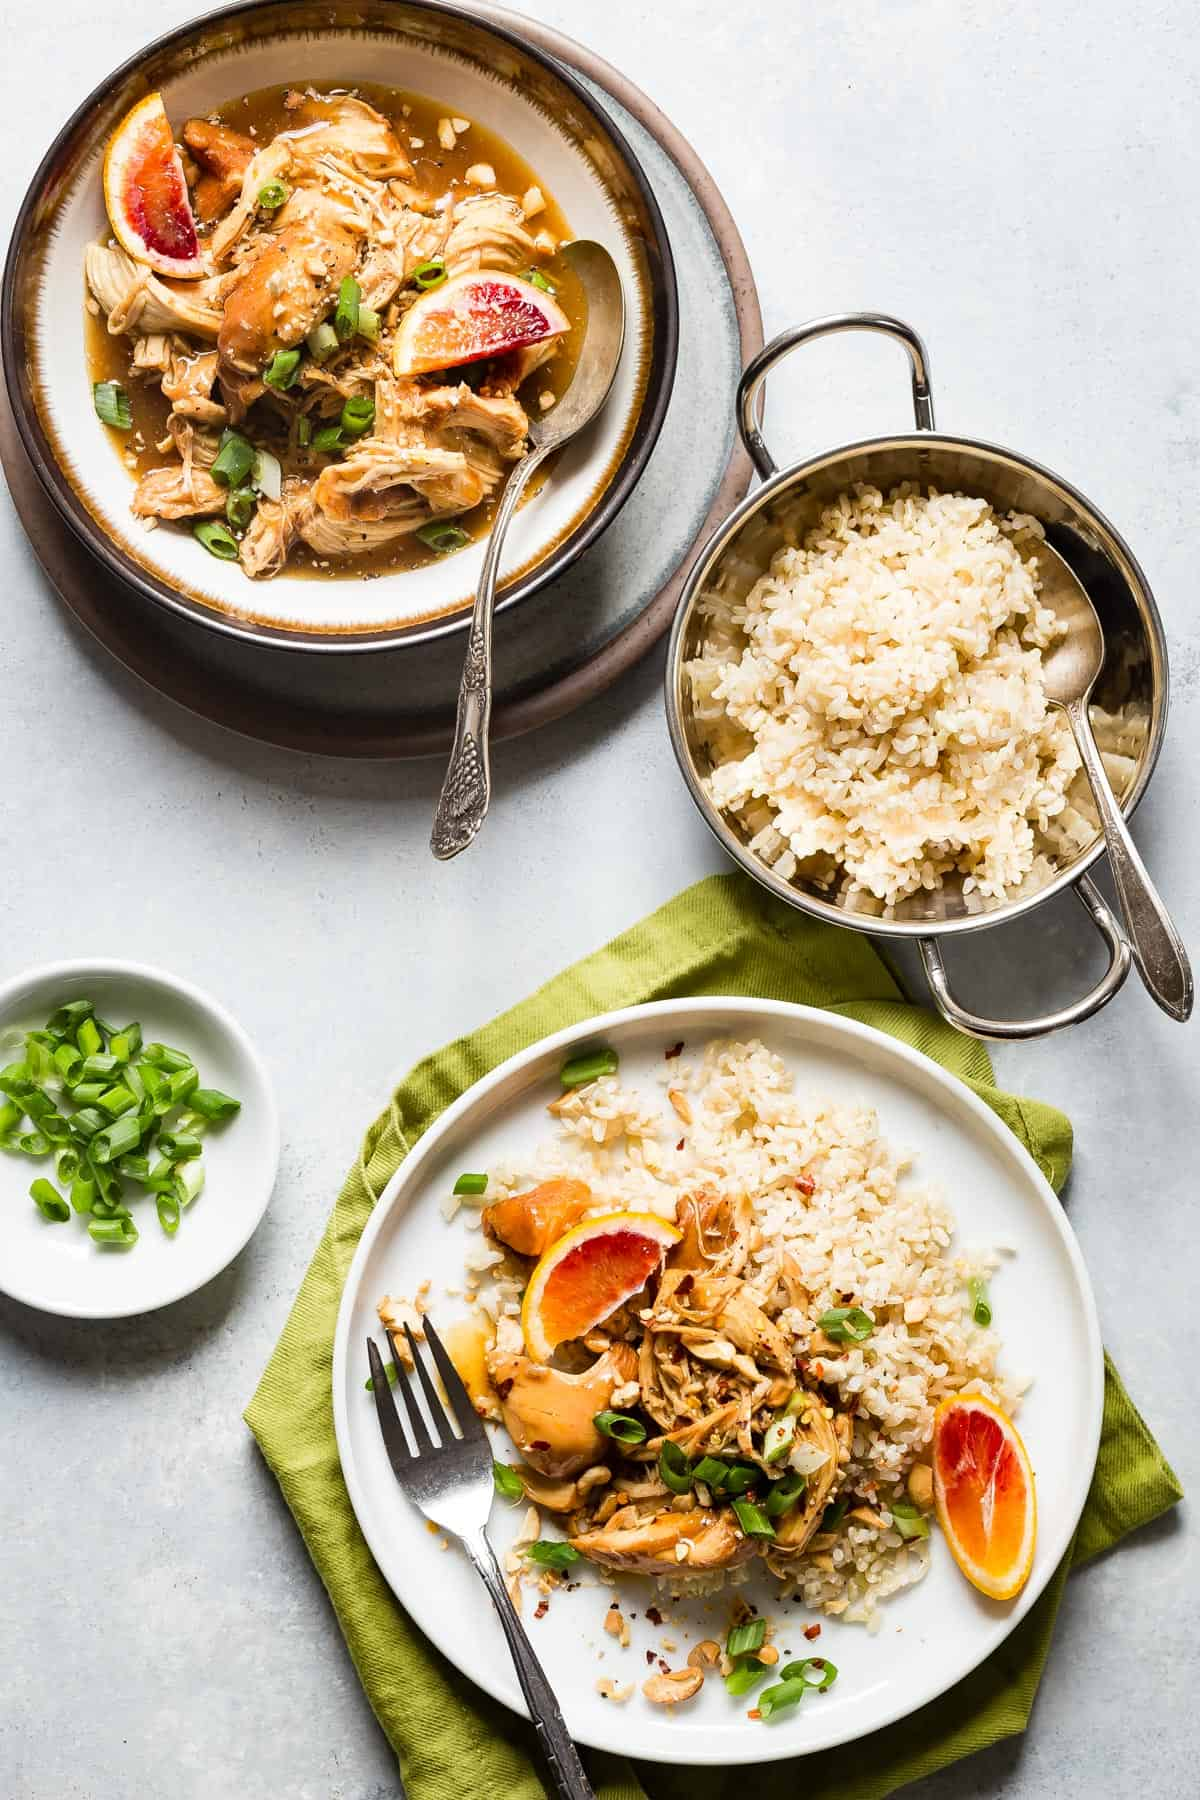 The classic Orange Chicken made in the slow cooker and served with fluffy brown rice on the side. Feed the family with this healthier version of the famous takeout!